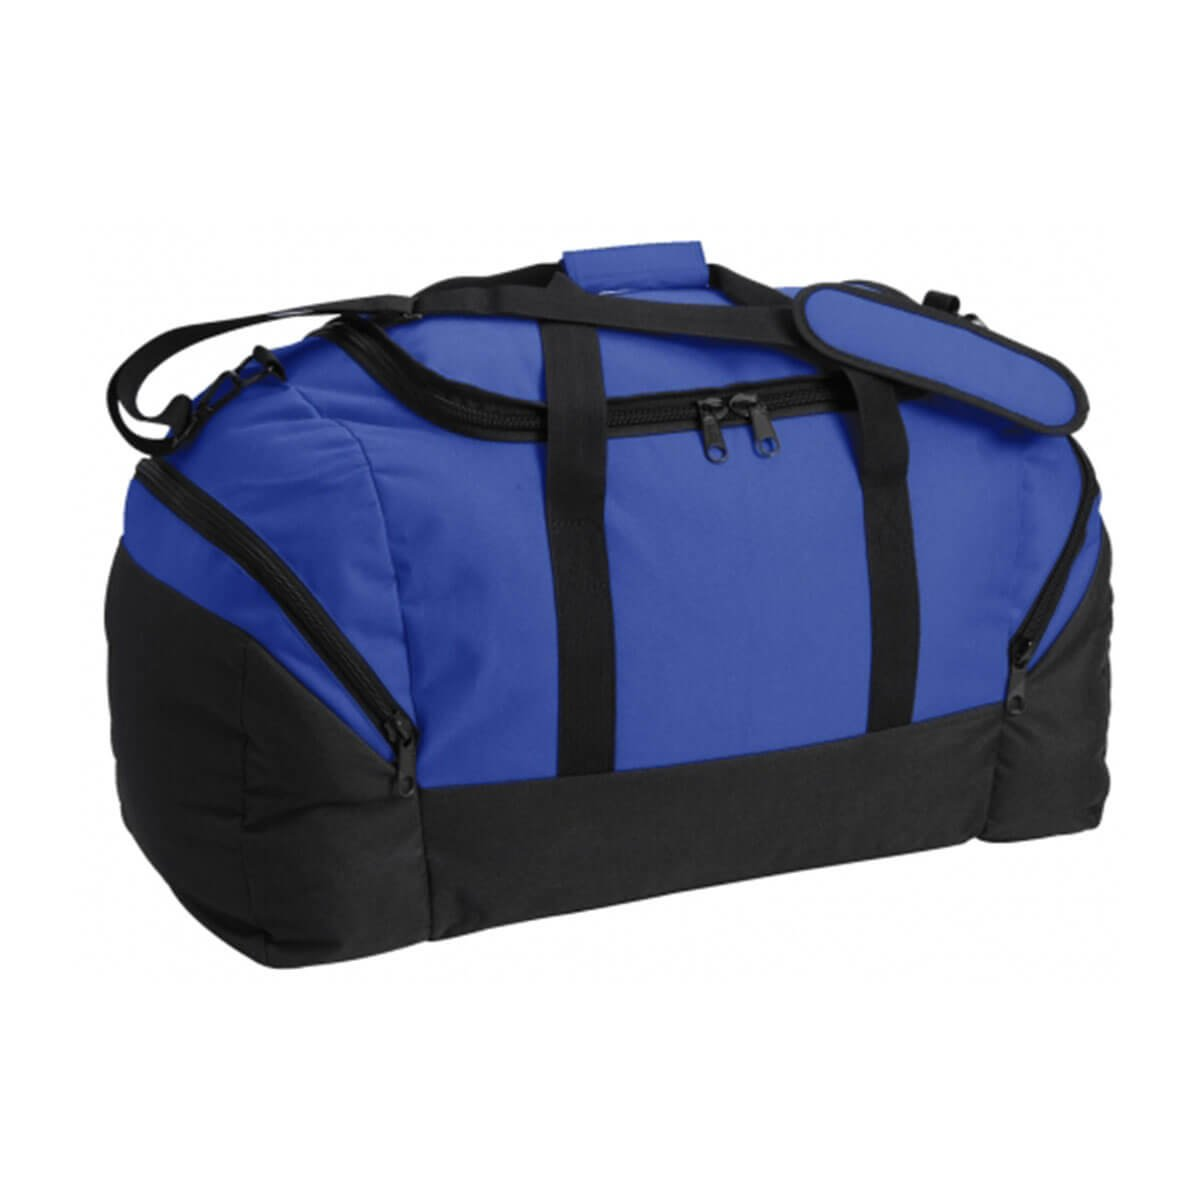 Team Sports Bag-Royal / Black